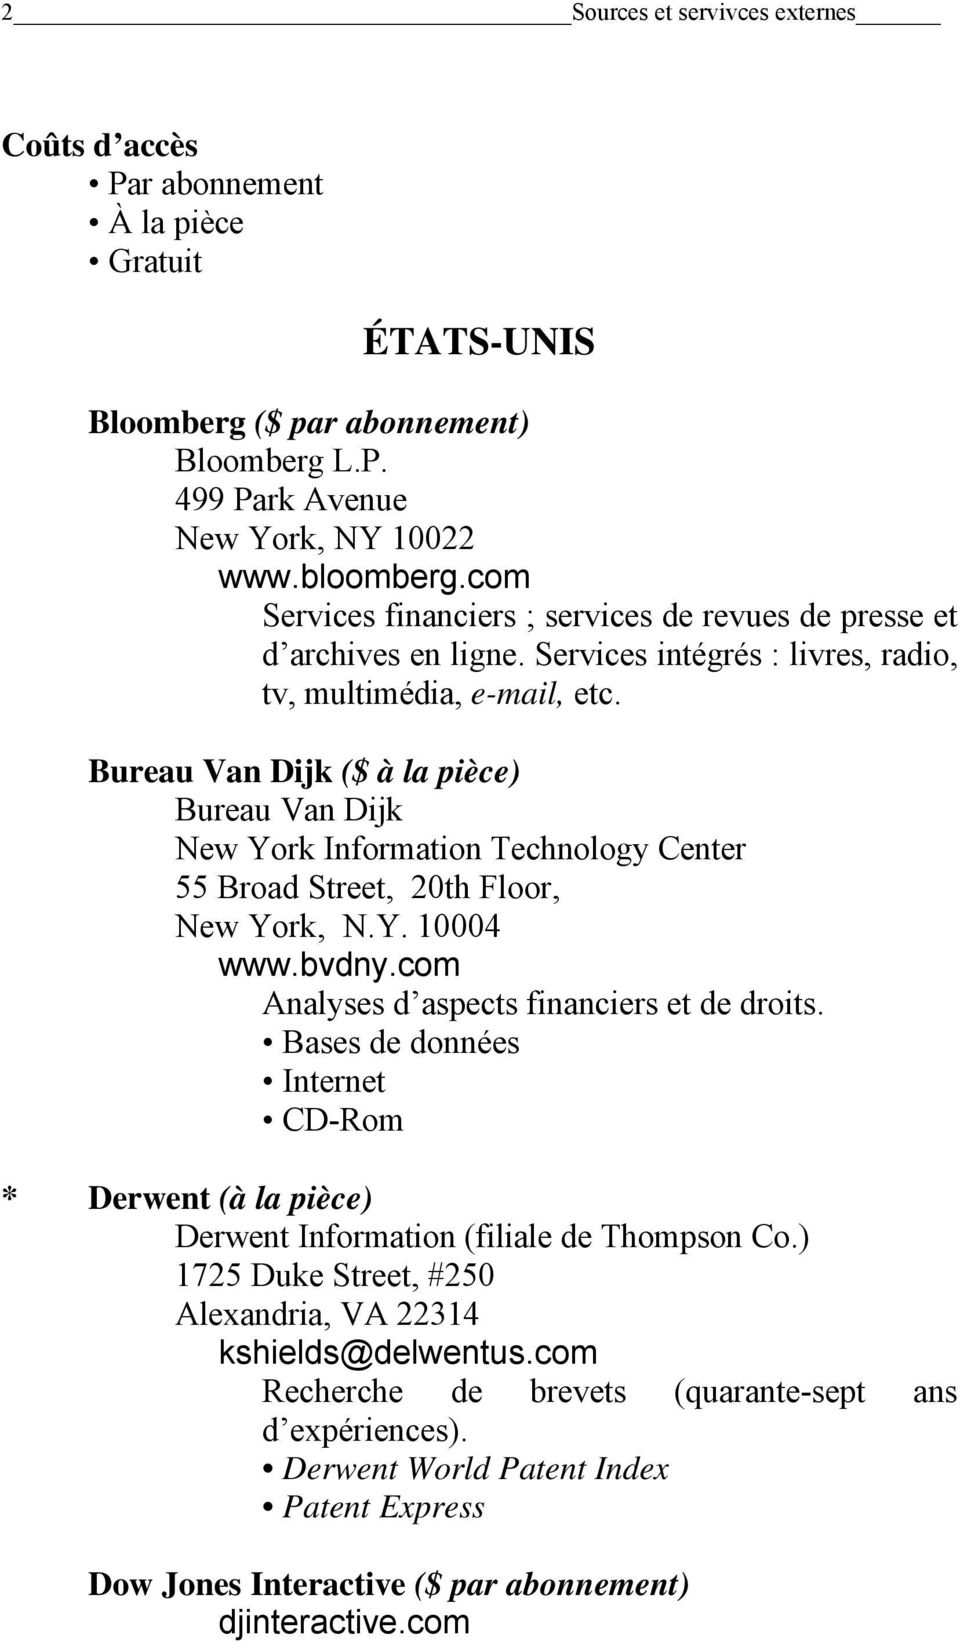 Bureau Van Dijk ($ à la pièce) Bureau Van Dijk New York Information Technology Center 55 Broad Street, 20th Floor, New York, N.Y. 10004 www.bvdny.com Analyses d aspects financiers et de droits.